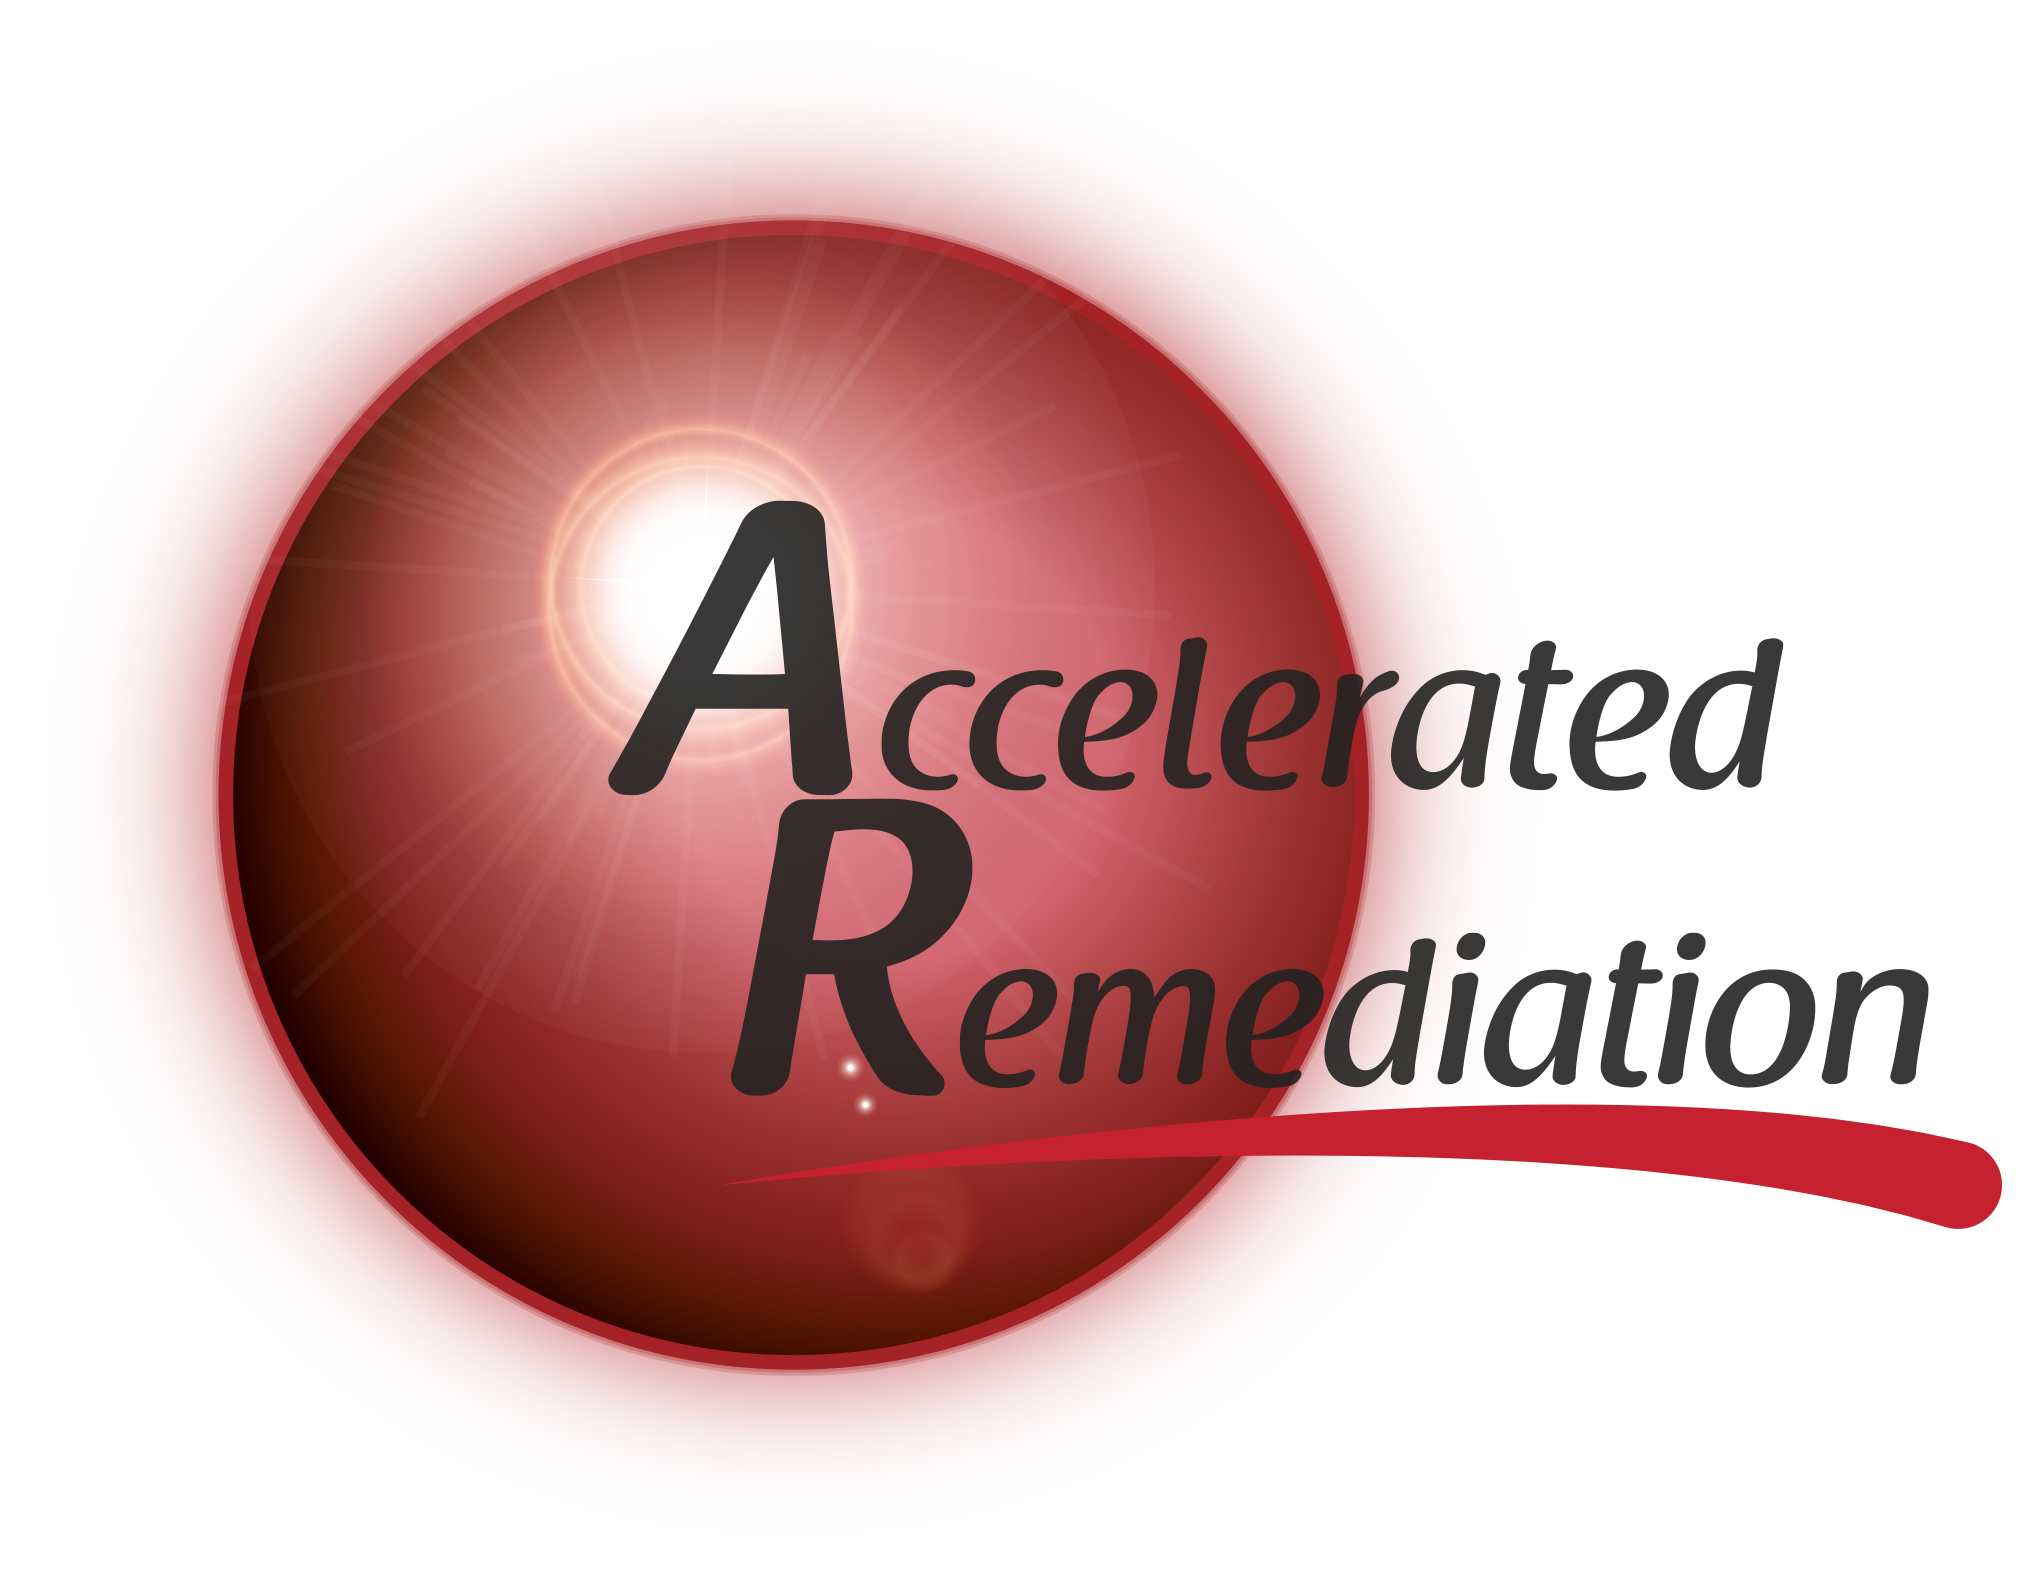 Accelerated Remediation Color copia